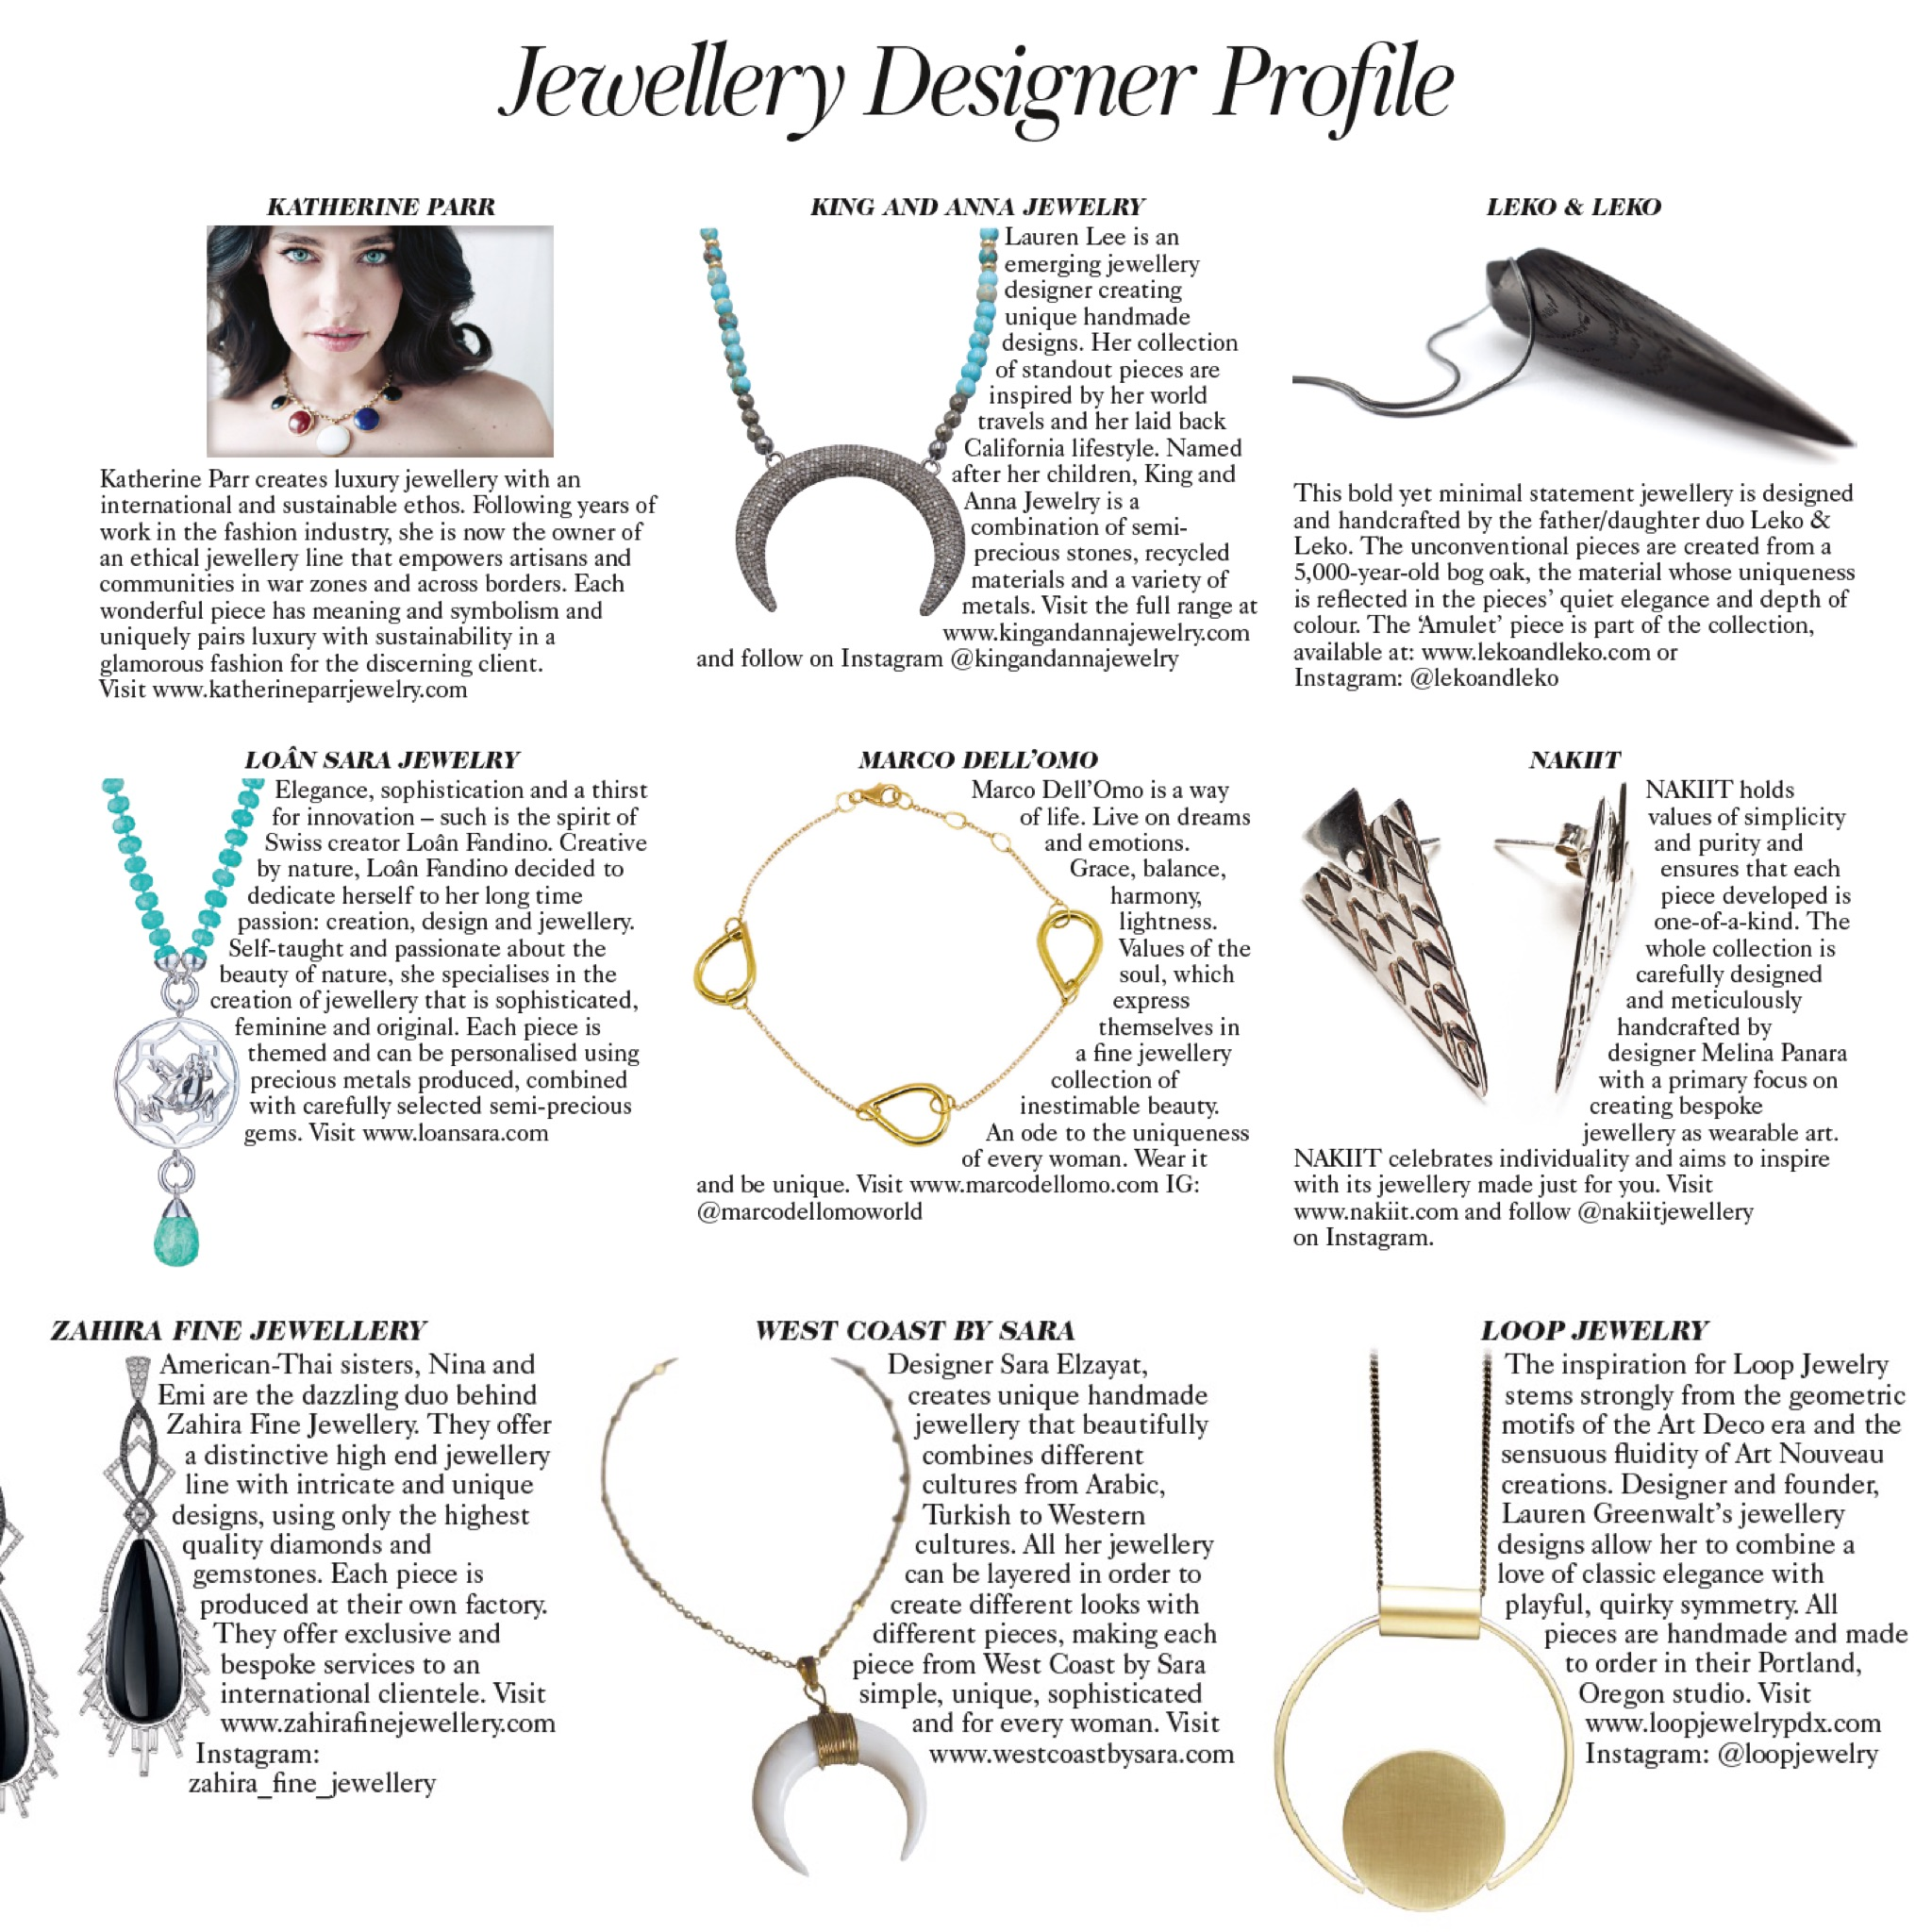 Loop Jewelry Designer Profile, Vogue